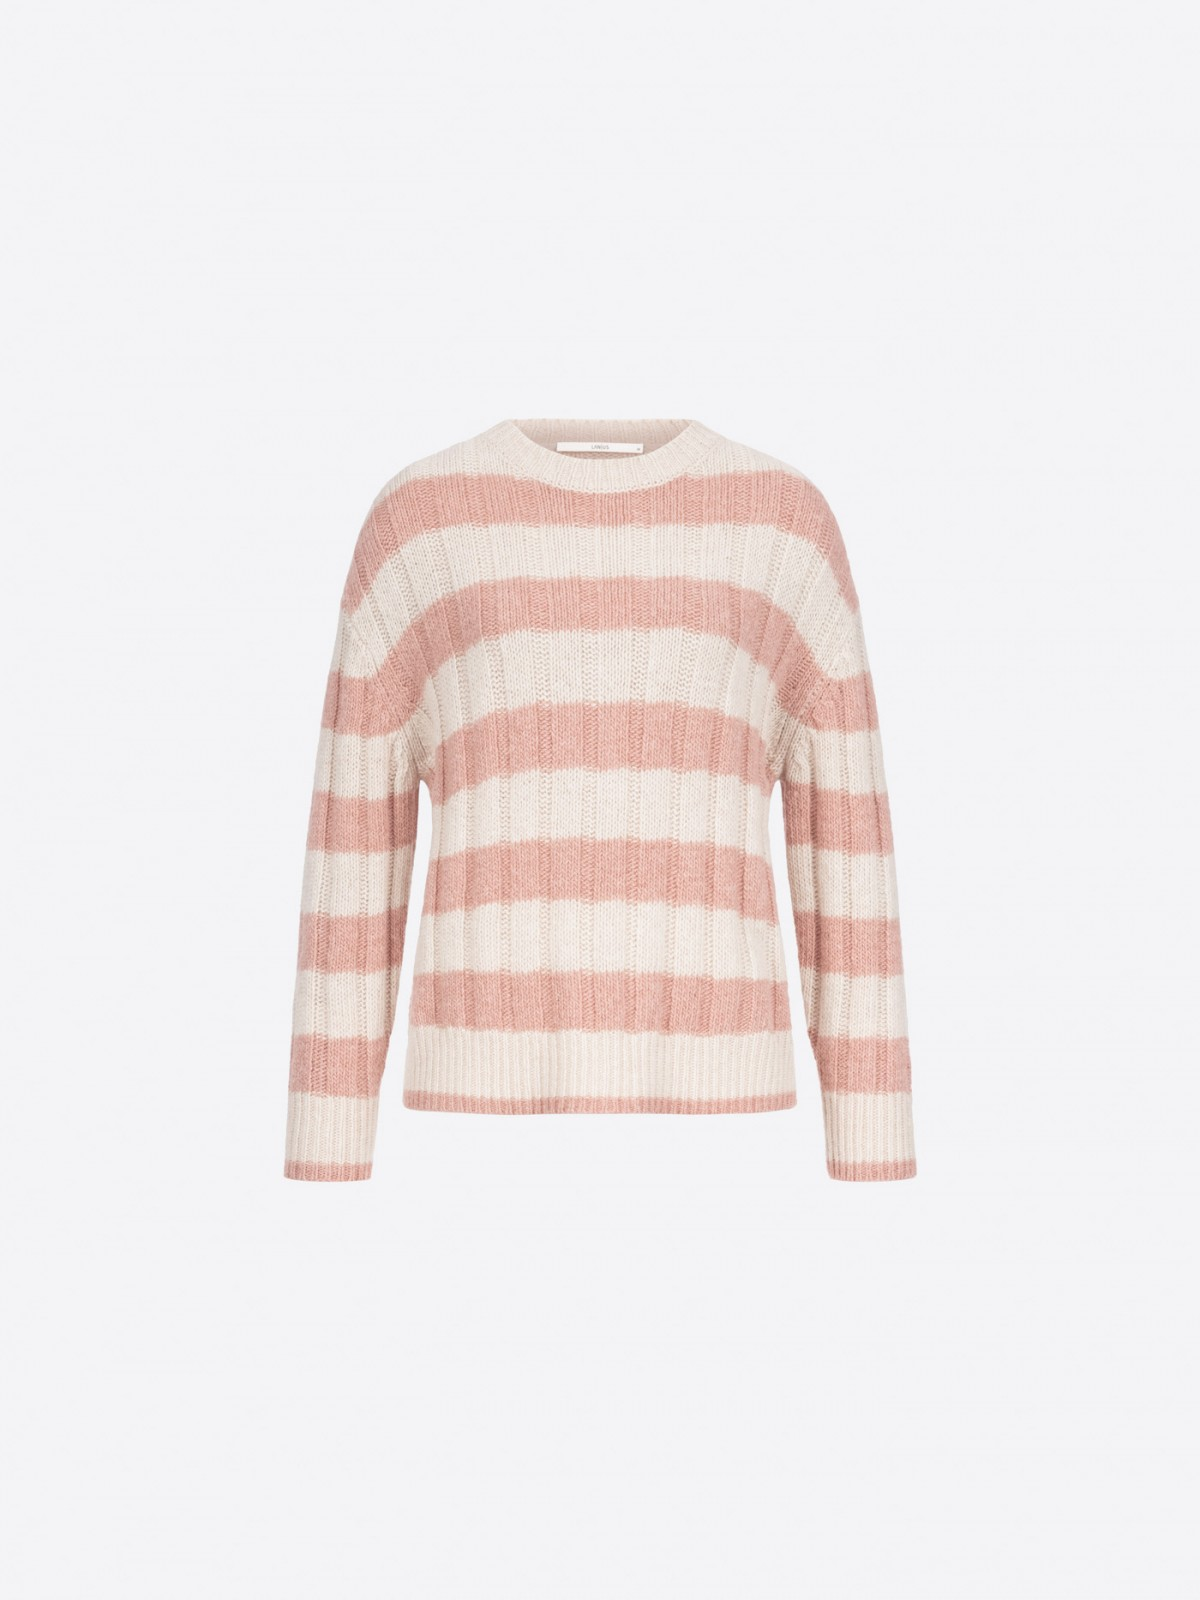 Sweater with block stripes